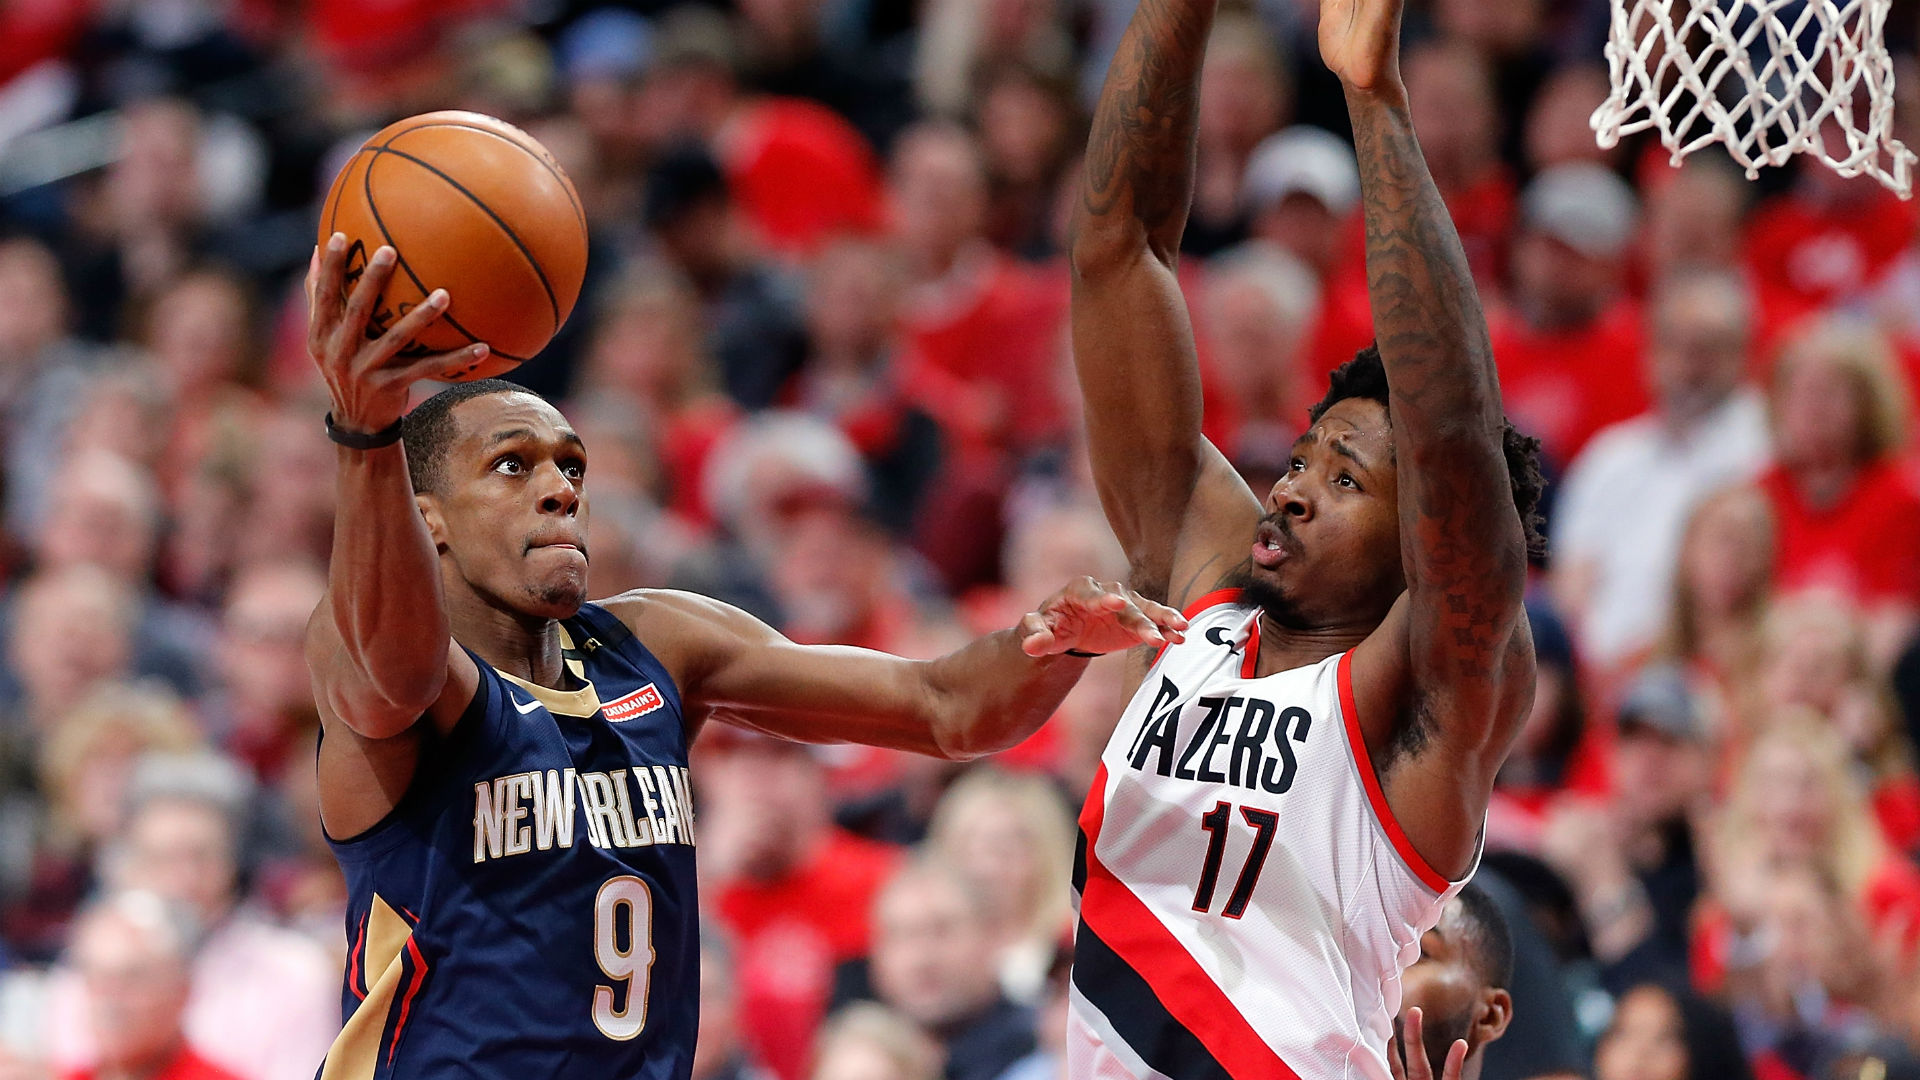 Playoff Rajon Rondo Has Returned With The Pelicans, But